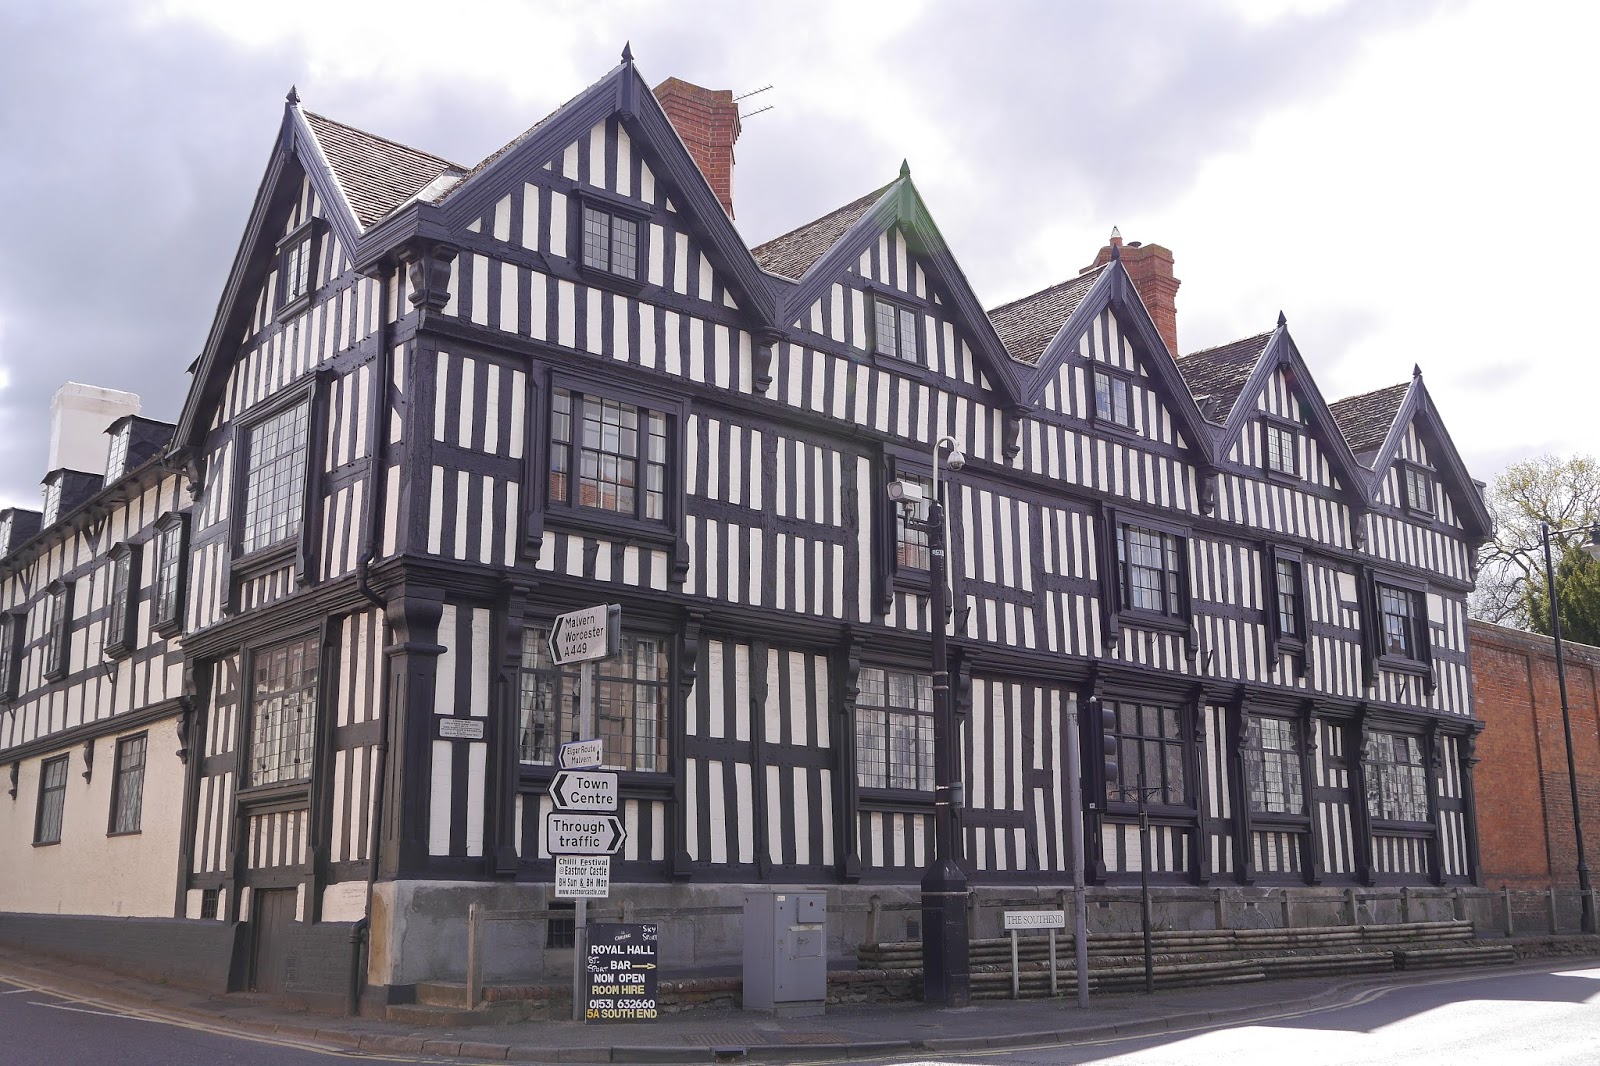 dating ledbury Situated in the centre of ledbury, a poetic town of timber framed buildings, a history dating back to 690ad and popular for its food and literary festivals.